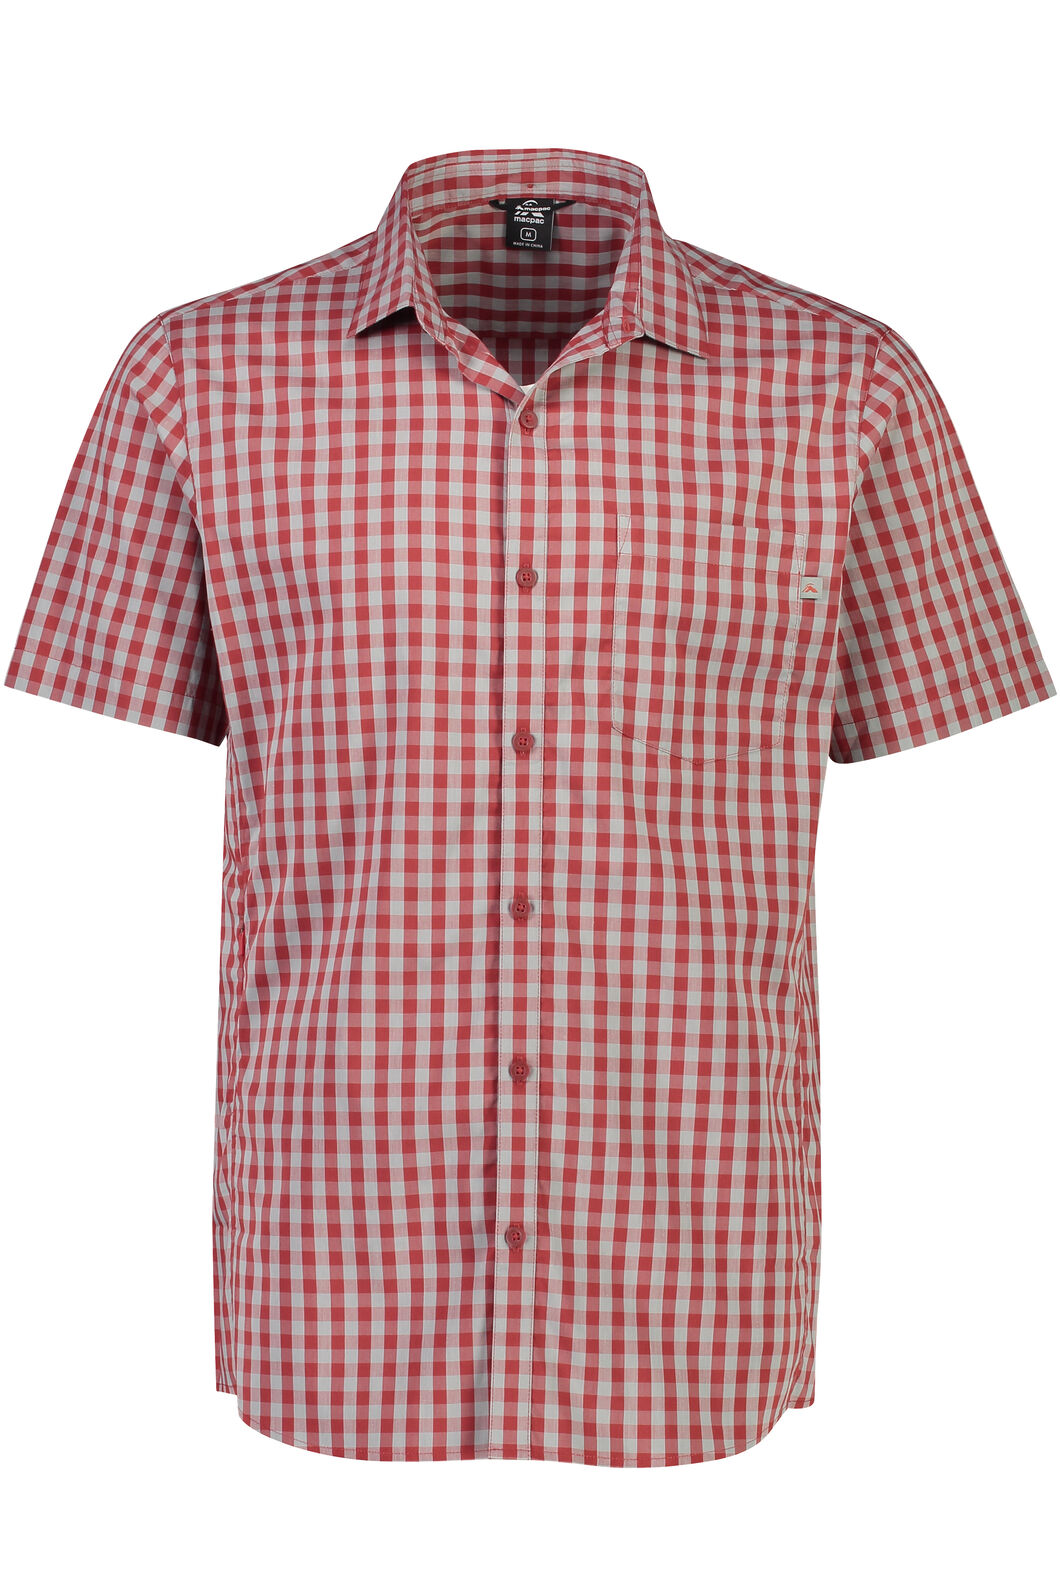 Macpac Crossroad Short Sleeve Shirt - Men's, Sundried Tomato, hi-res